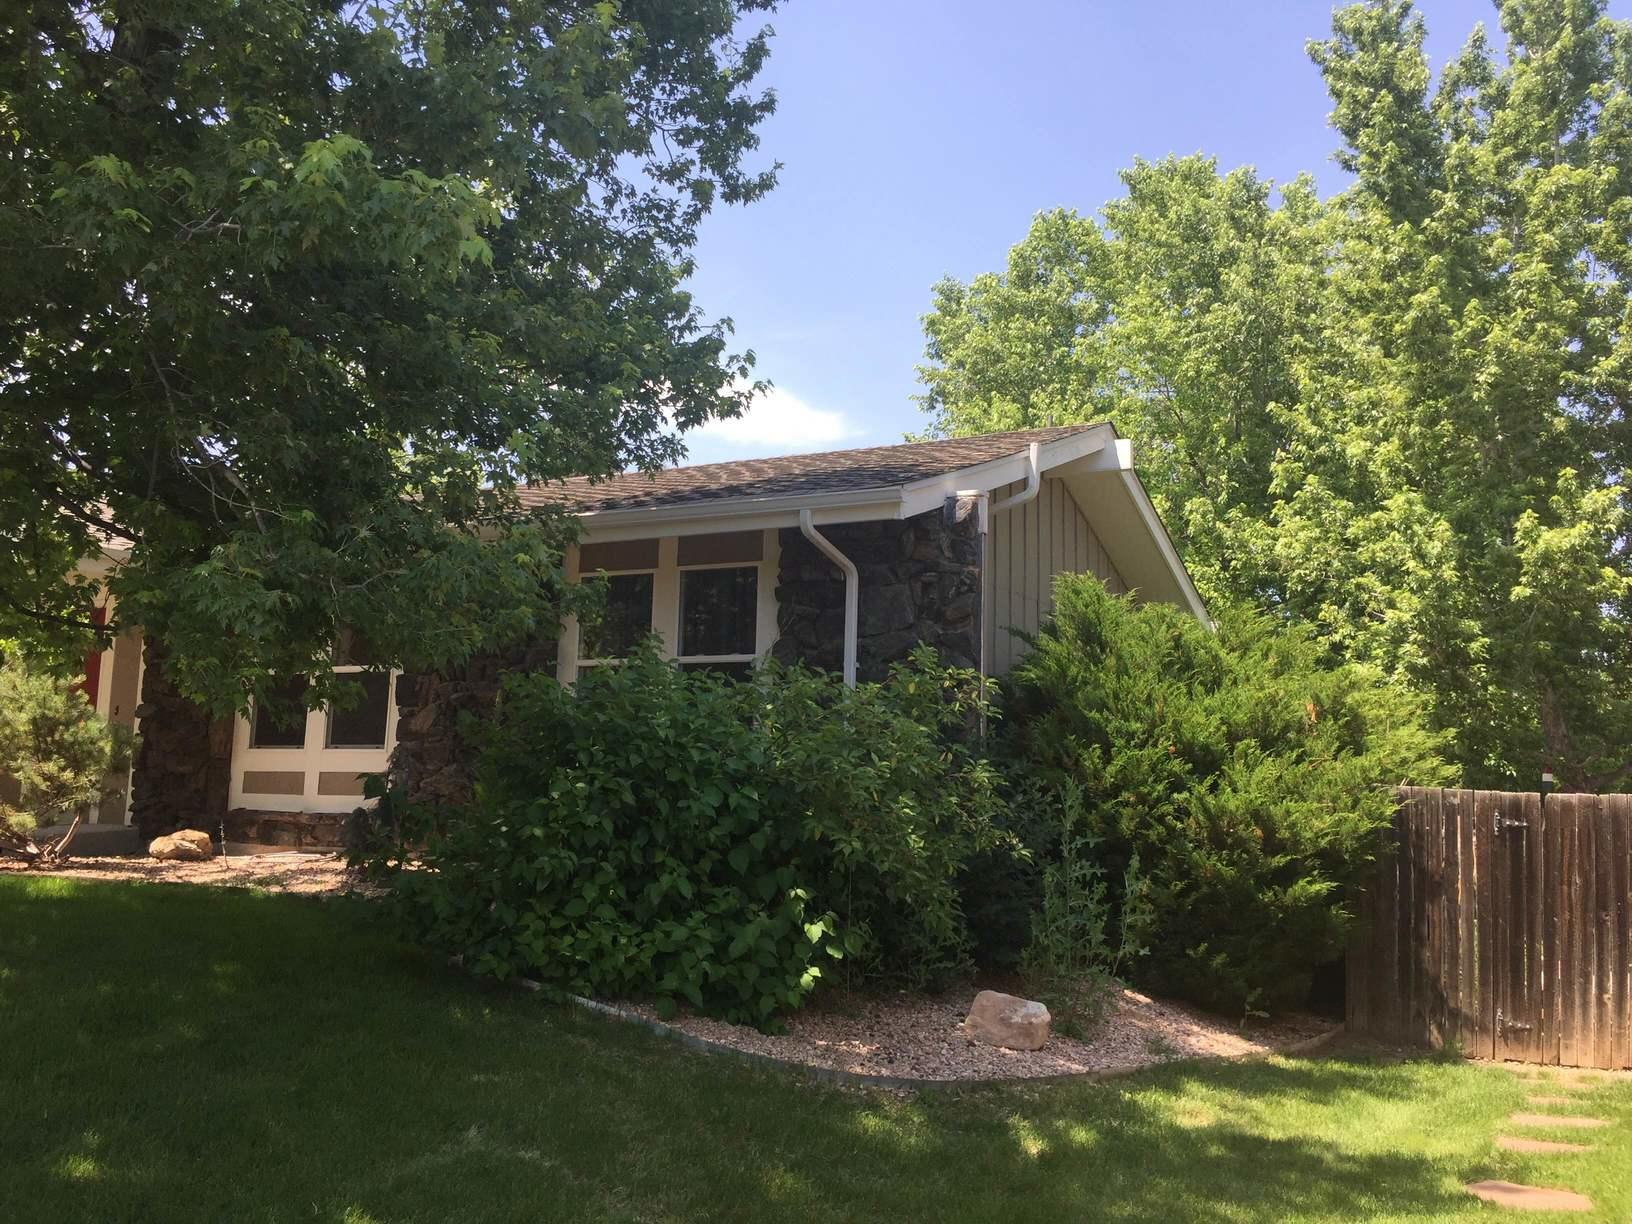 Roof Replacement in Englewood, CO - After Photo